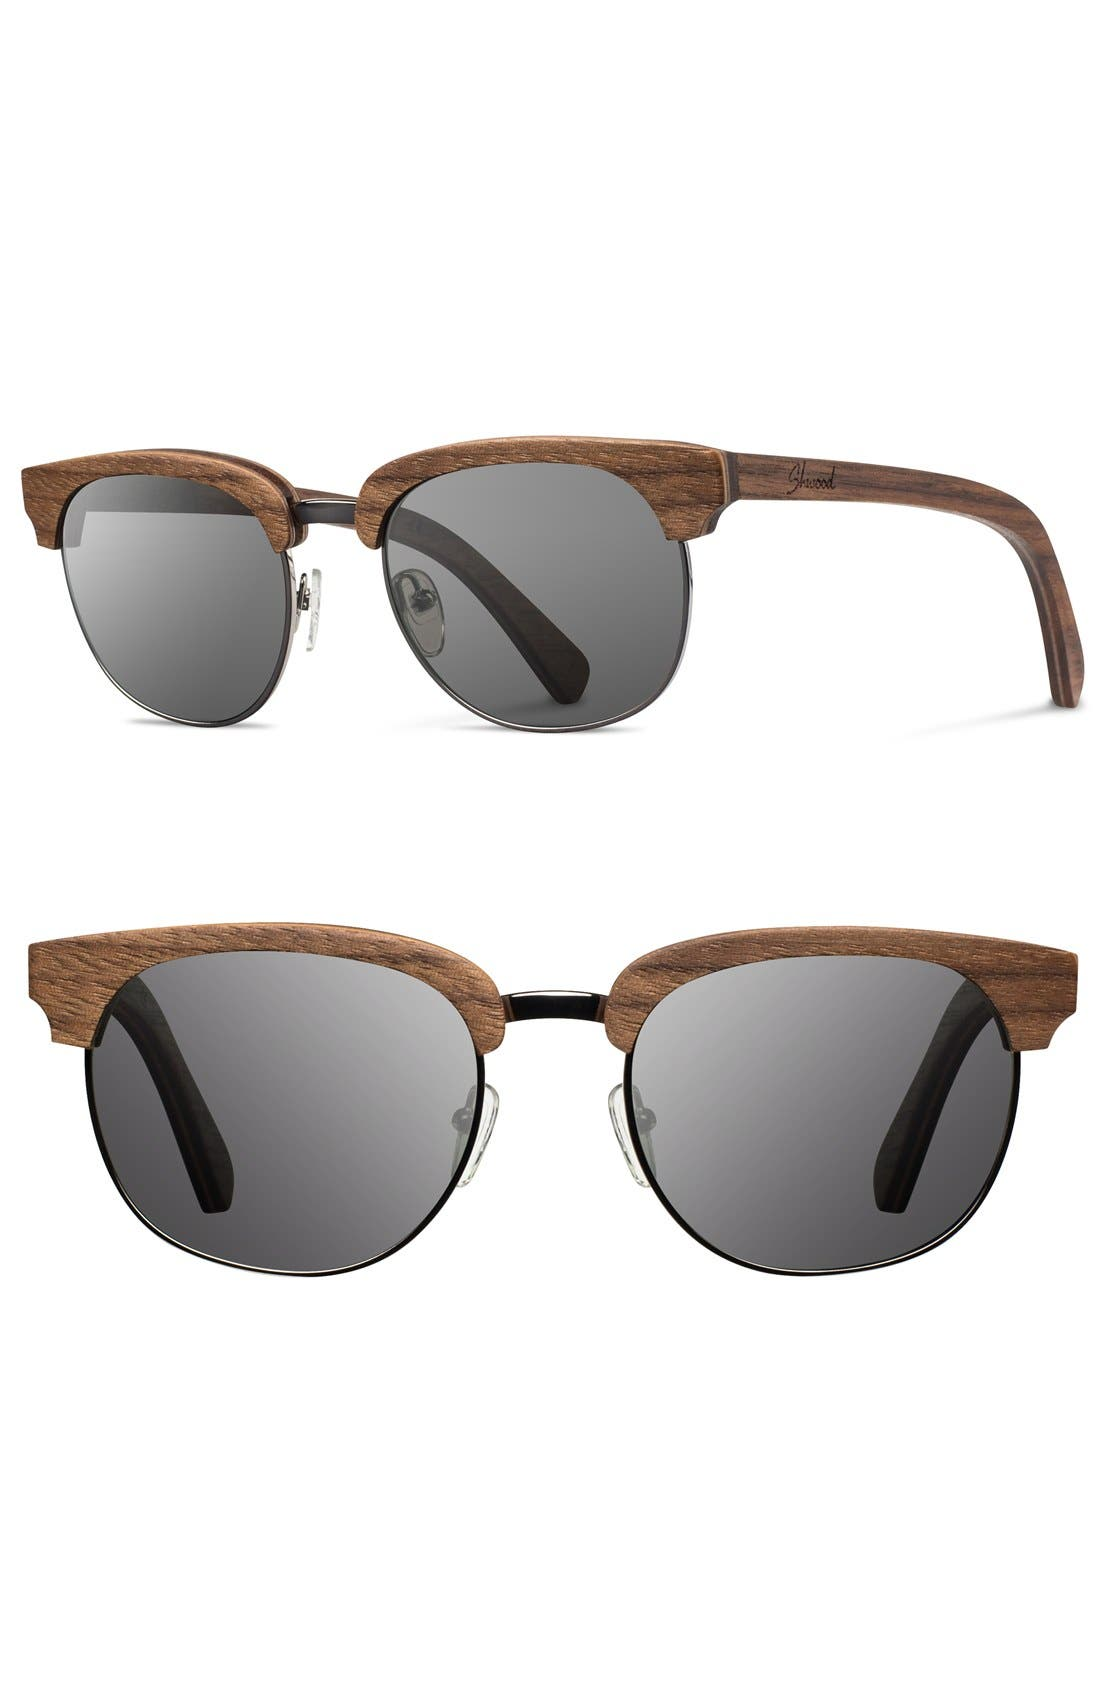 Alternate Image 1 Selected - Shwood 'Eugene' 54mm Wood Sunglasses